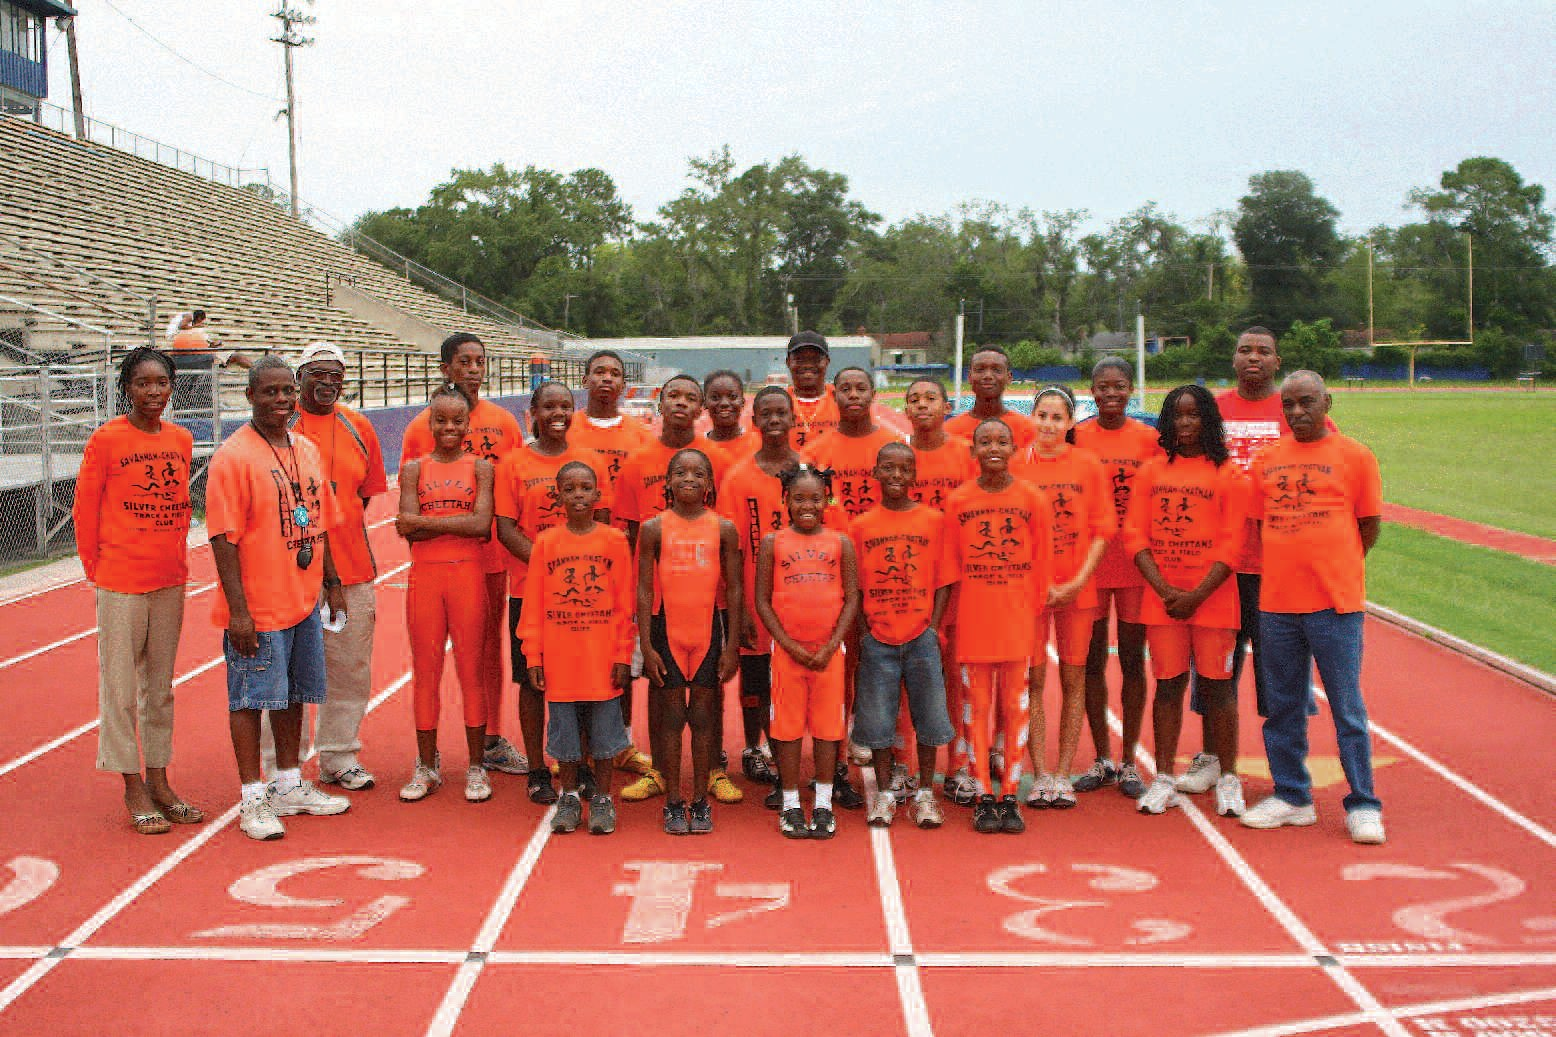 Members of the Savannah-Chatham Silver Cheetahs are pictured with coaches